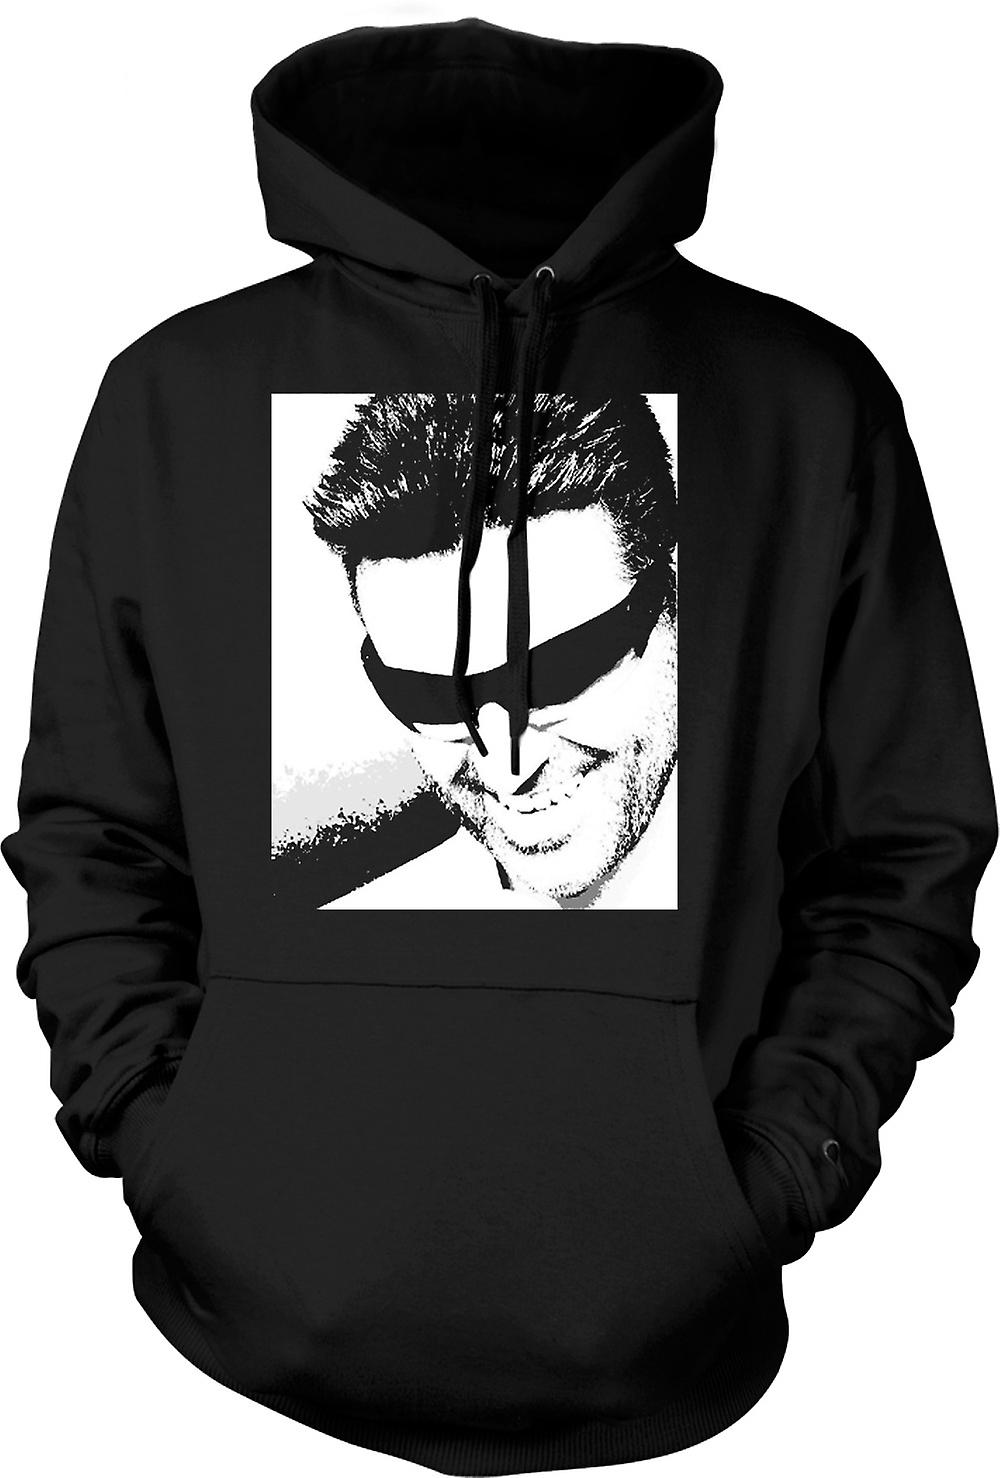 Mens Hoodie - George Michael - Pop Art - Portrait